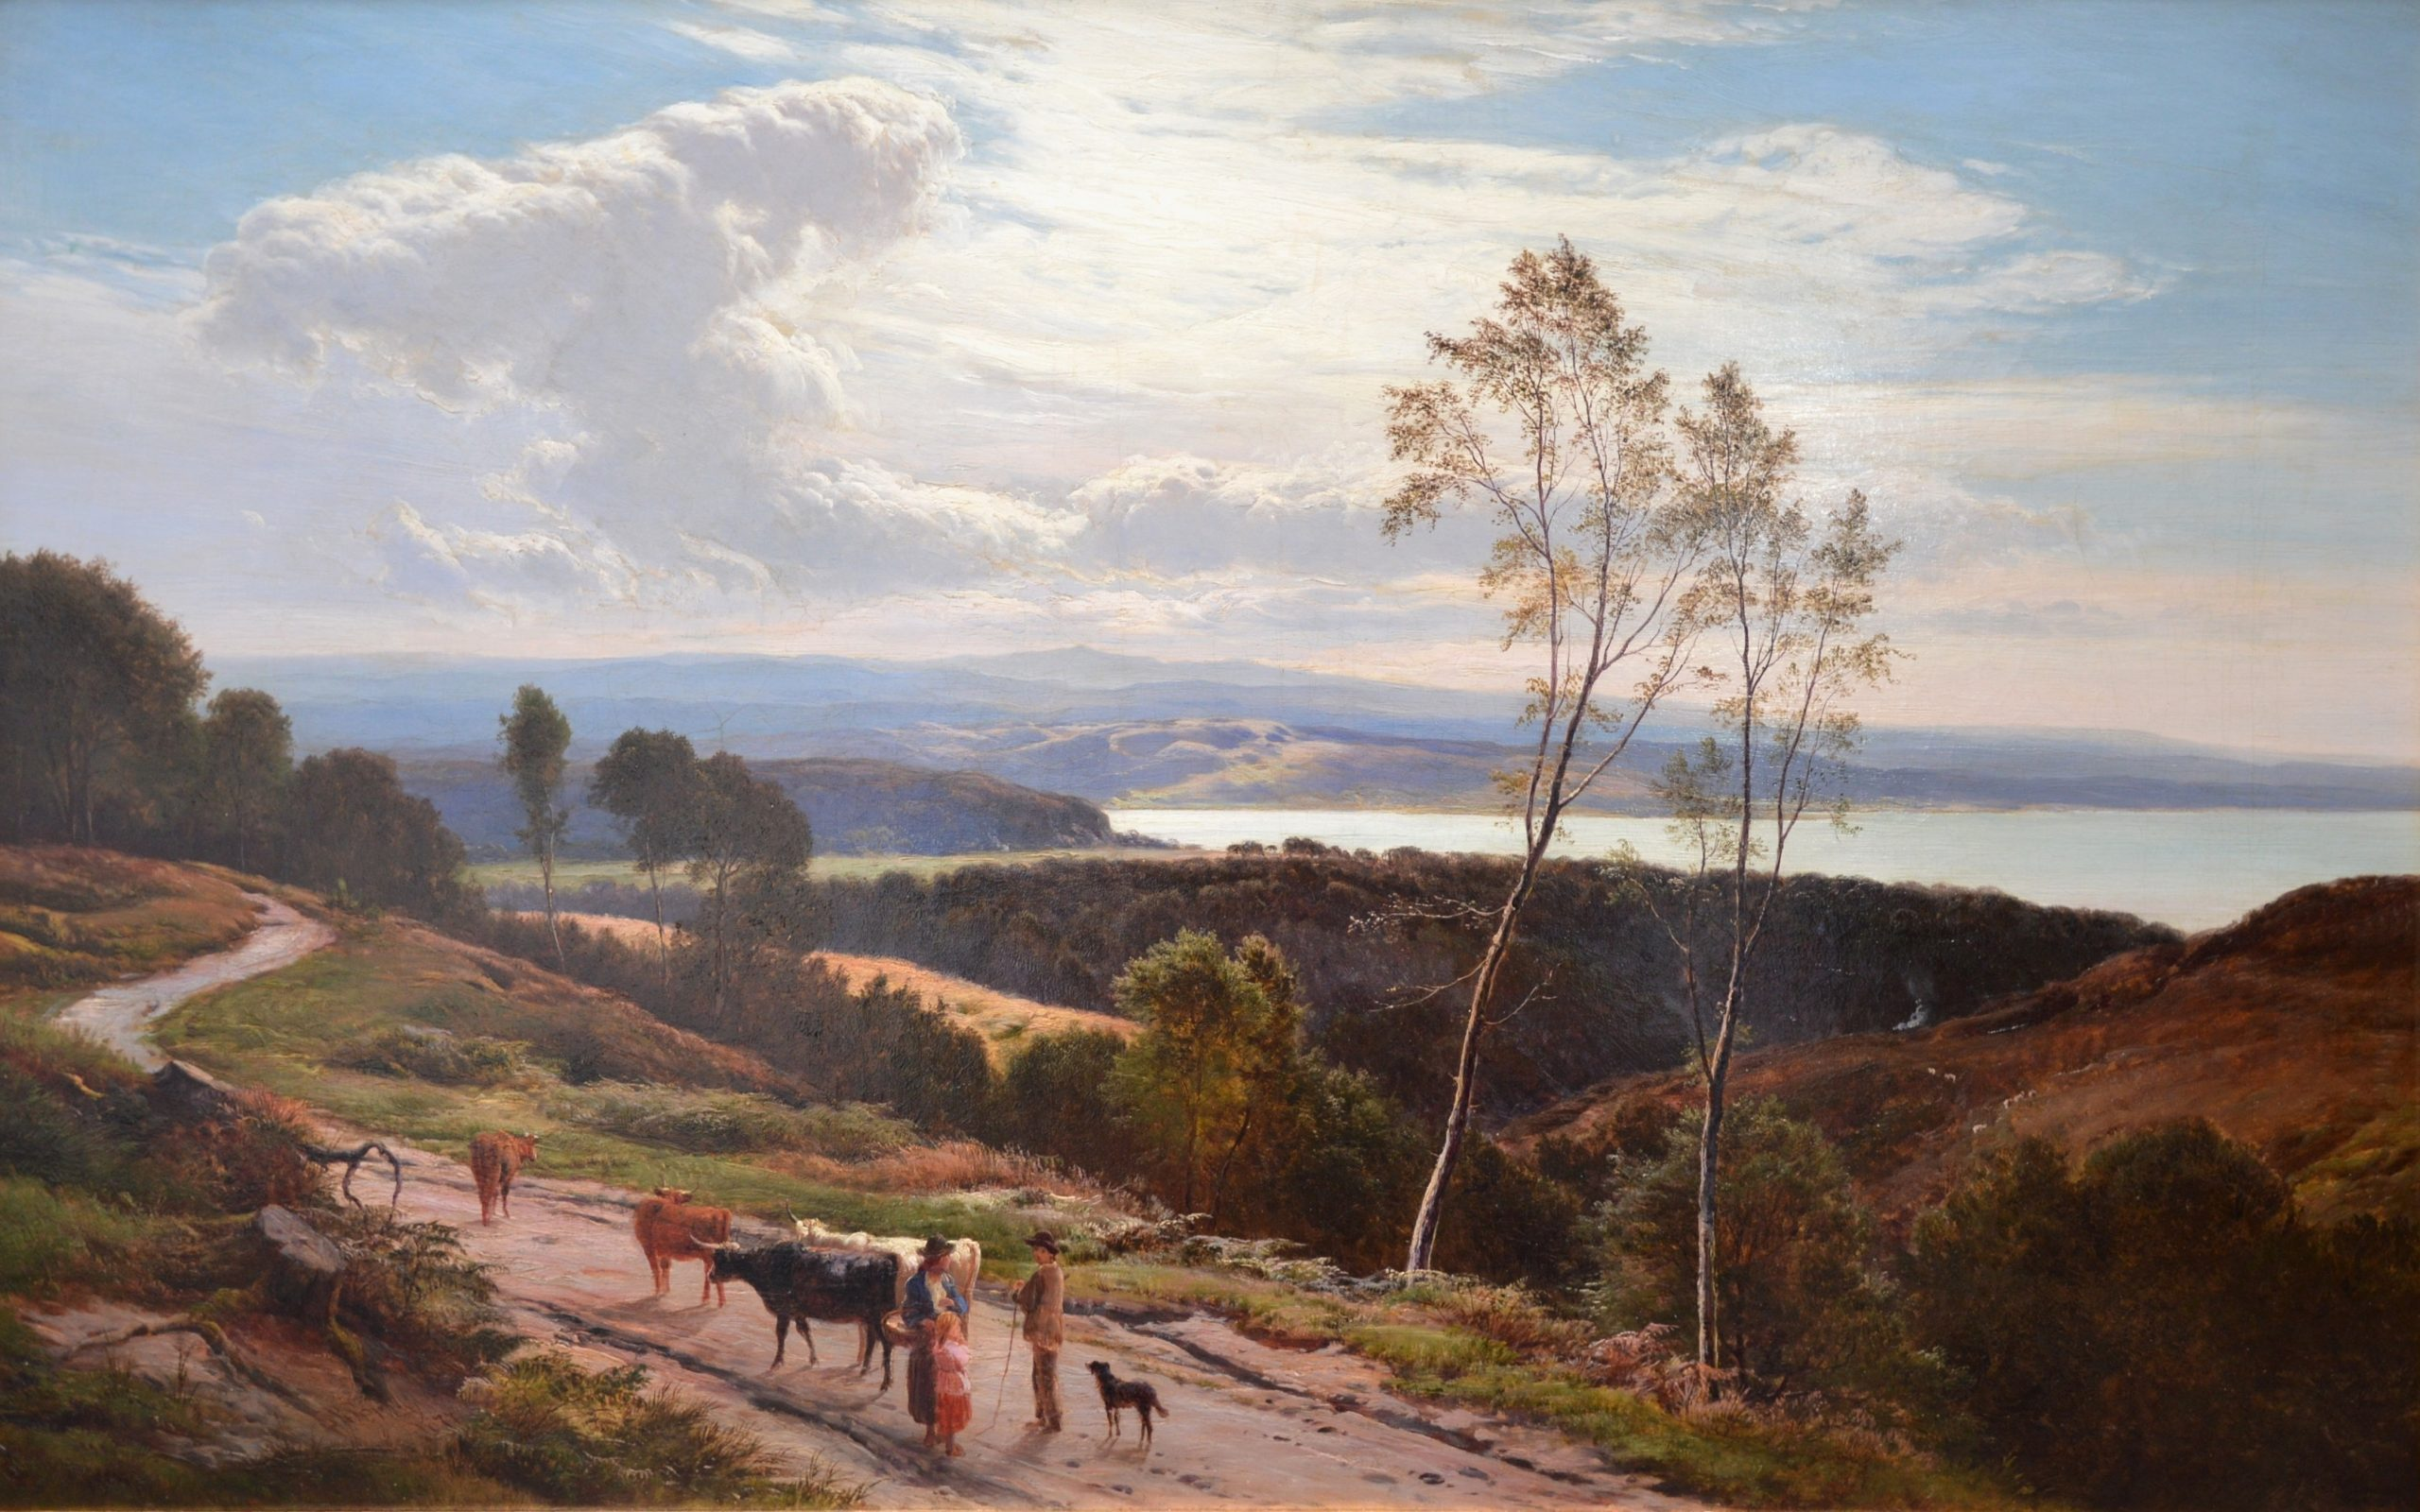 Grange-over-Sands, Cumbria - Large 19th Century Landscape Oil Painting Image